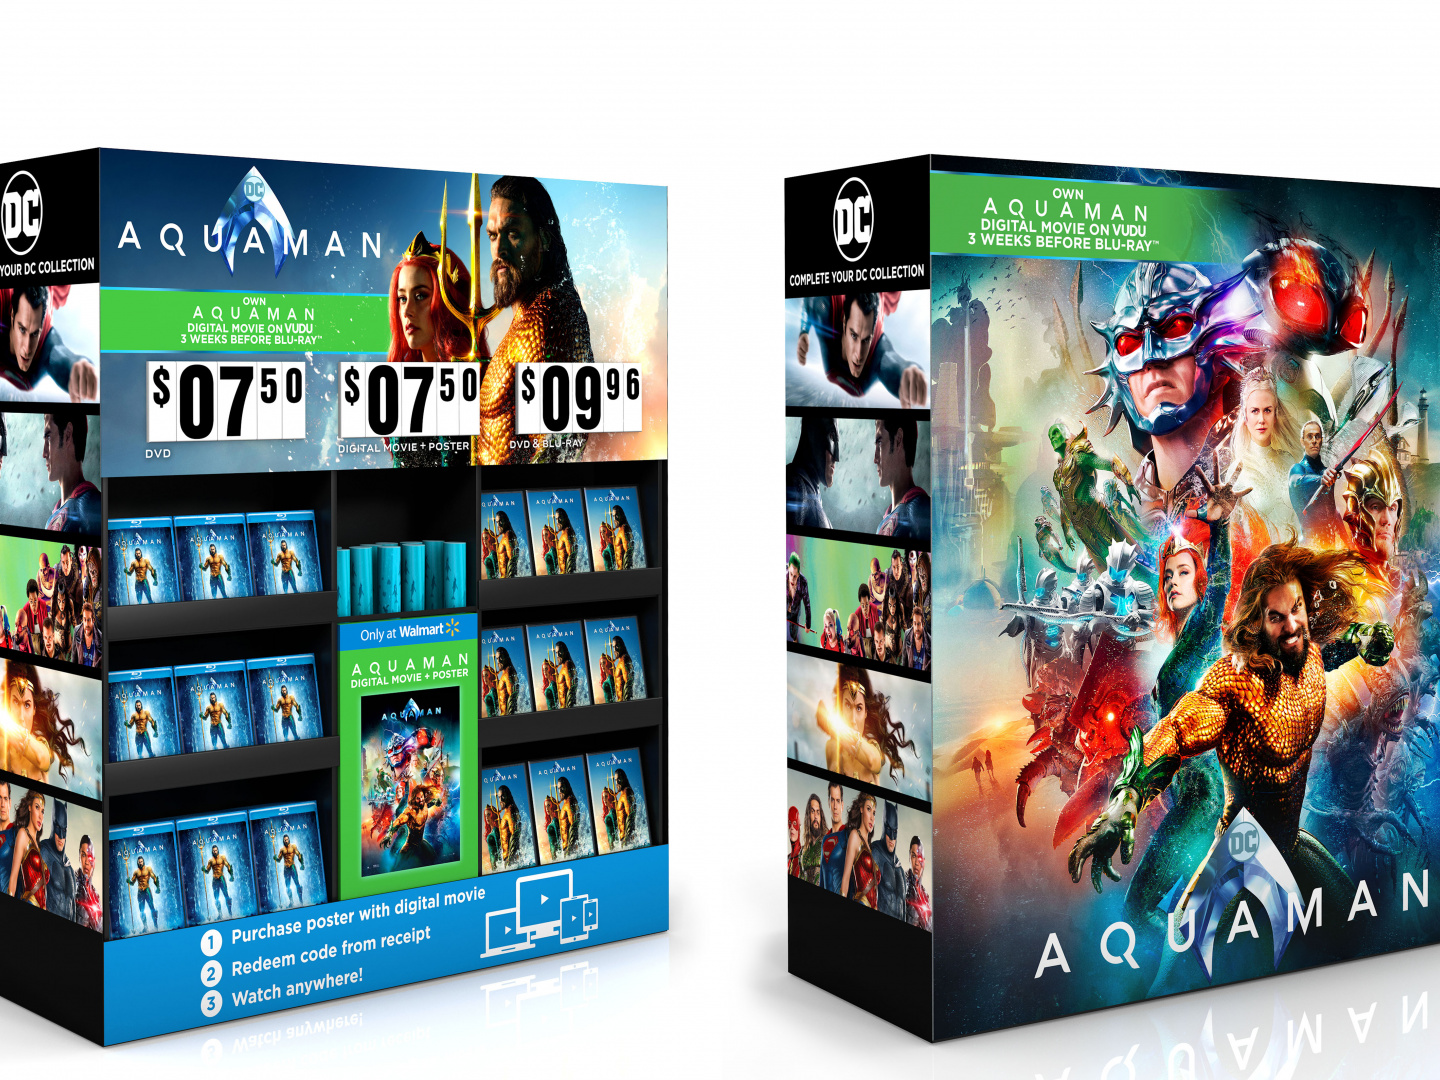 Aquaman Home Entertainment Walmart Display Poster/Digital Cube Thumbnail